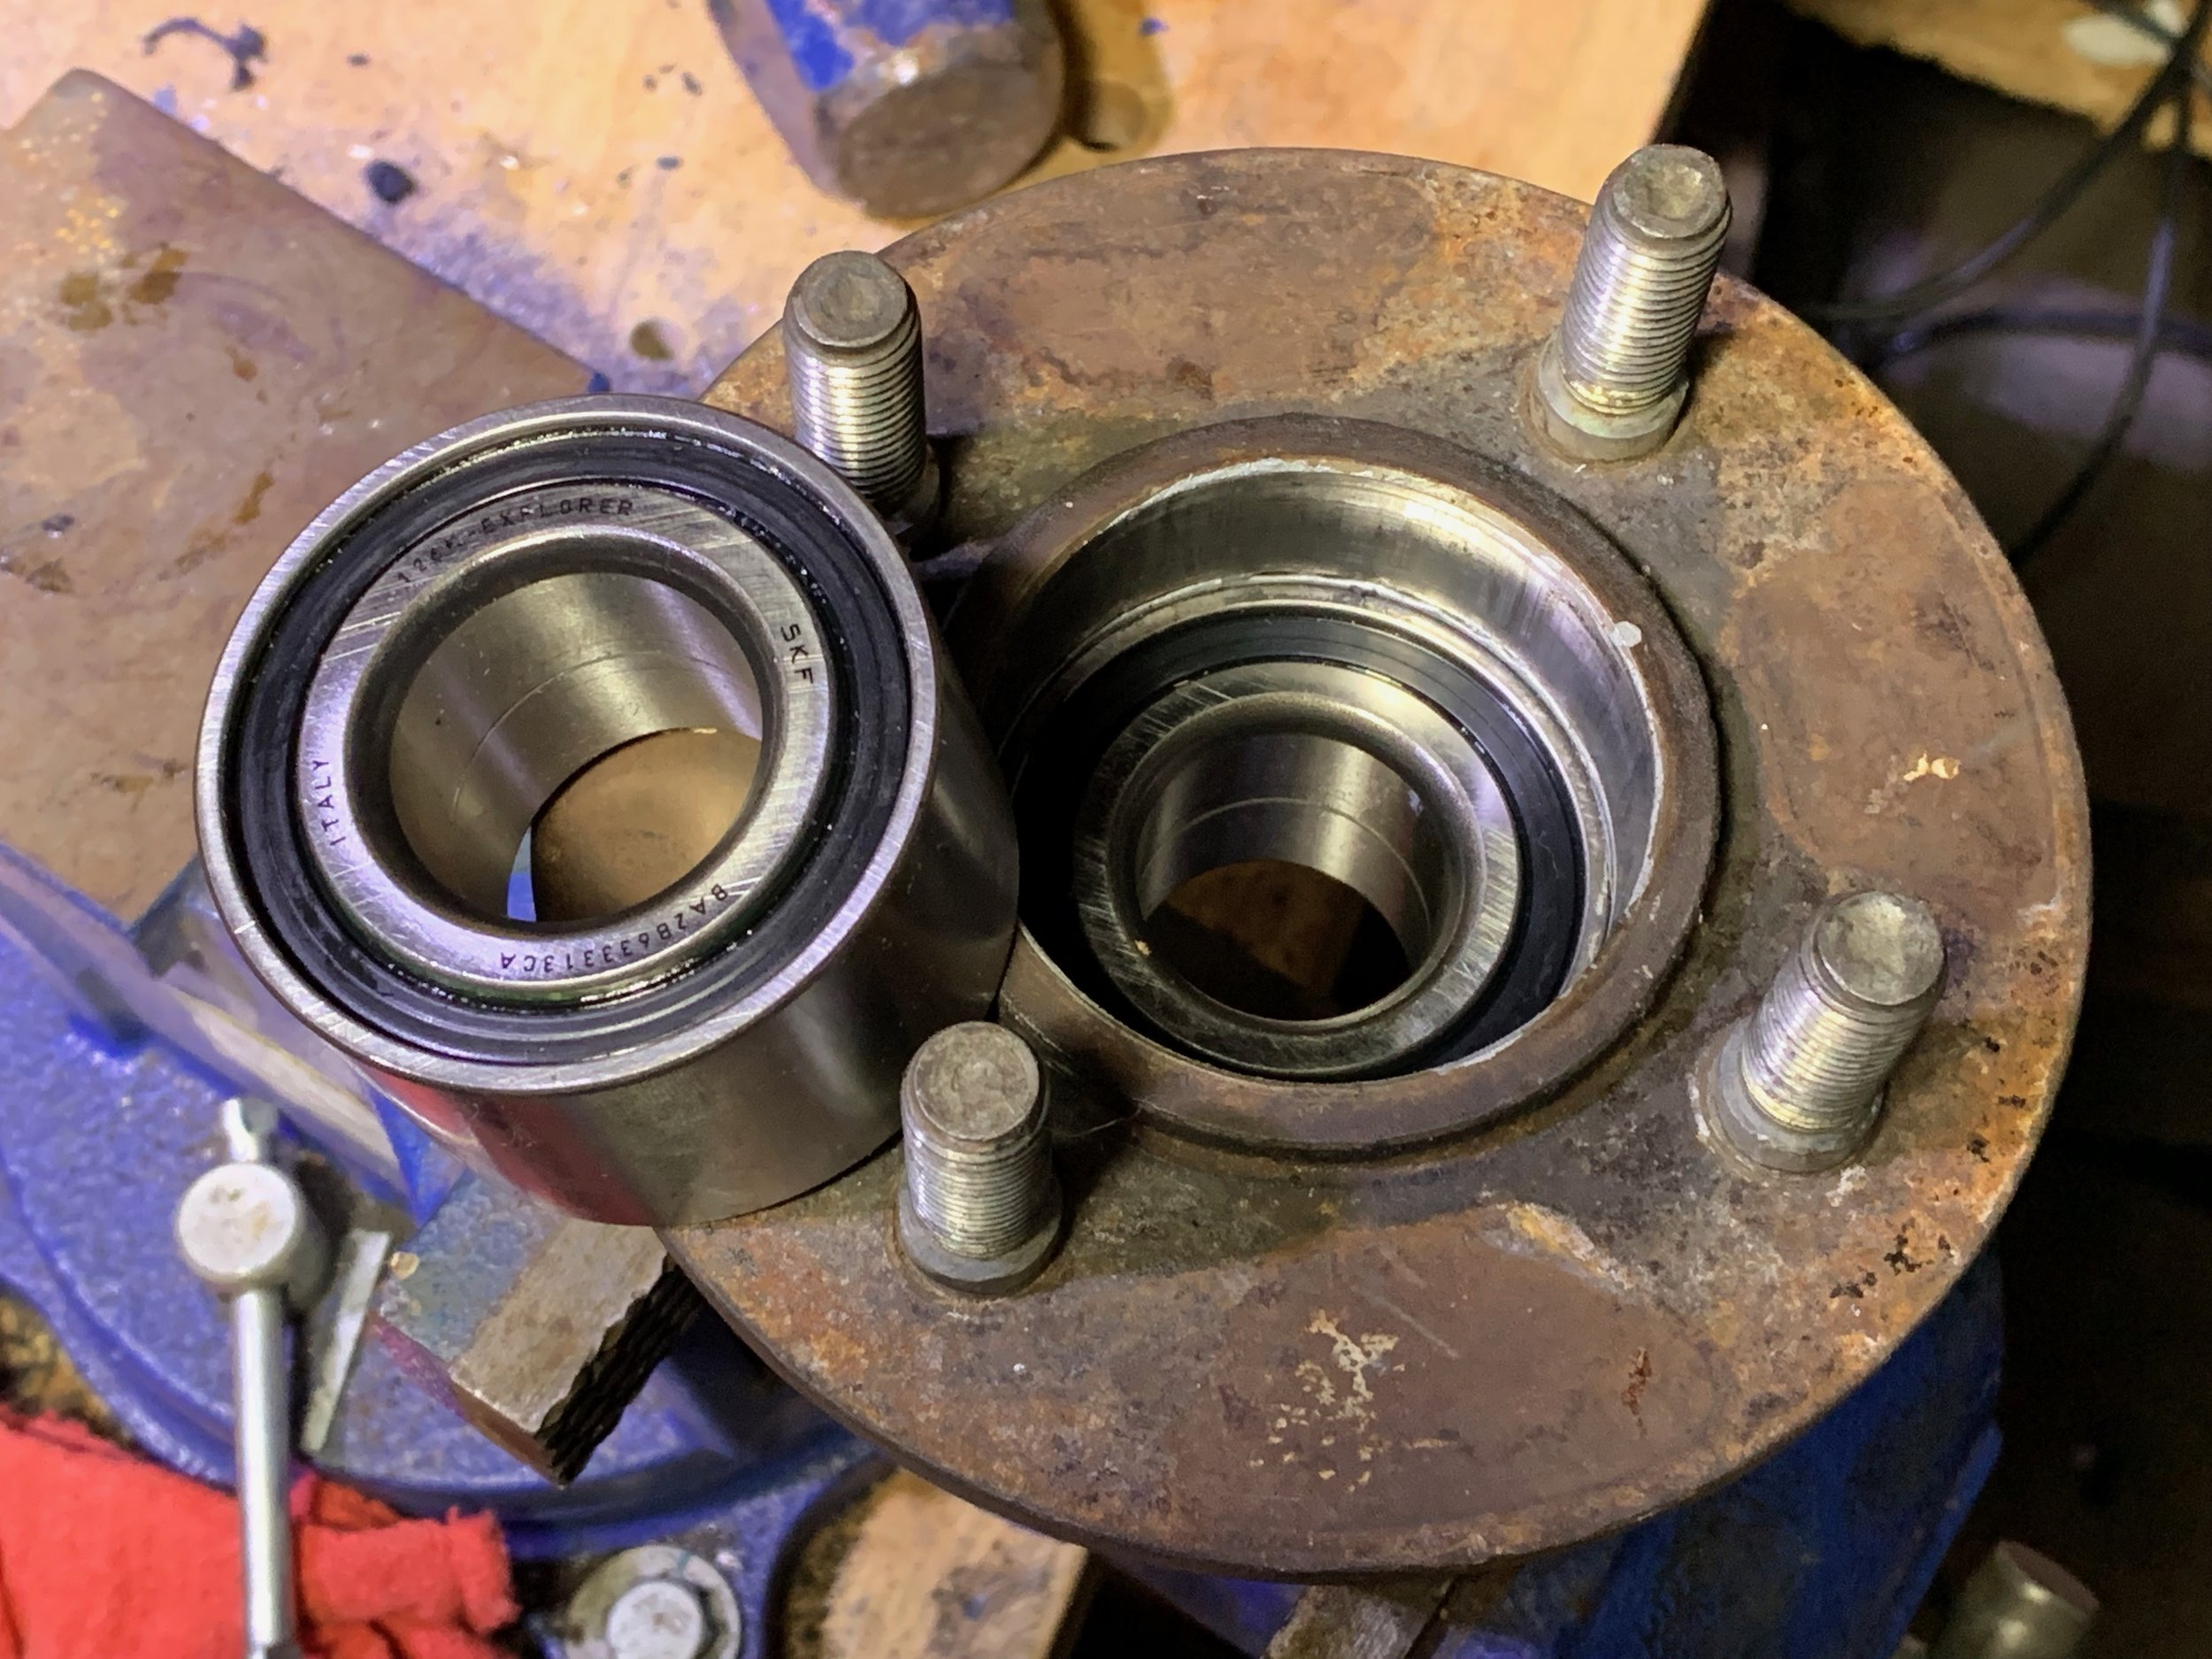 The new bearing fully pressed in, with the other bearing ready to go for the other hub.